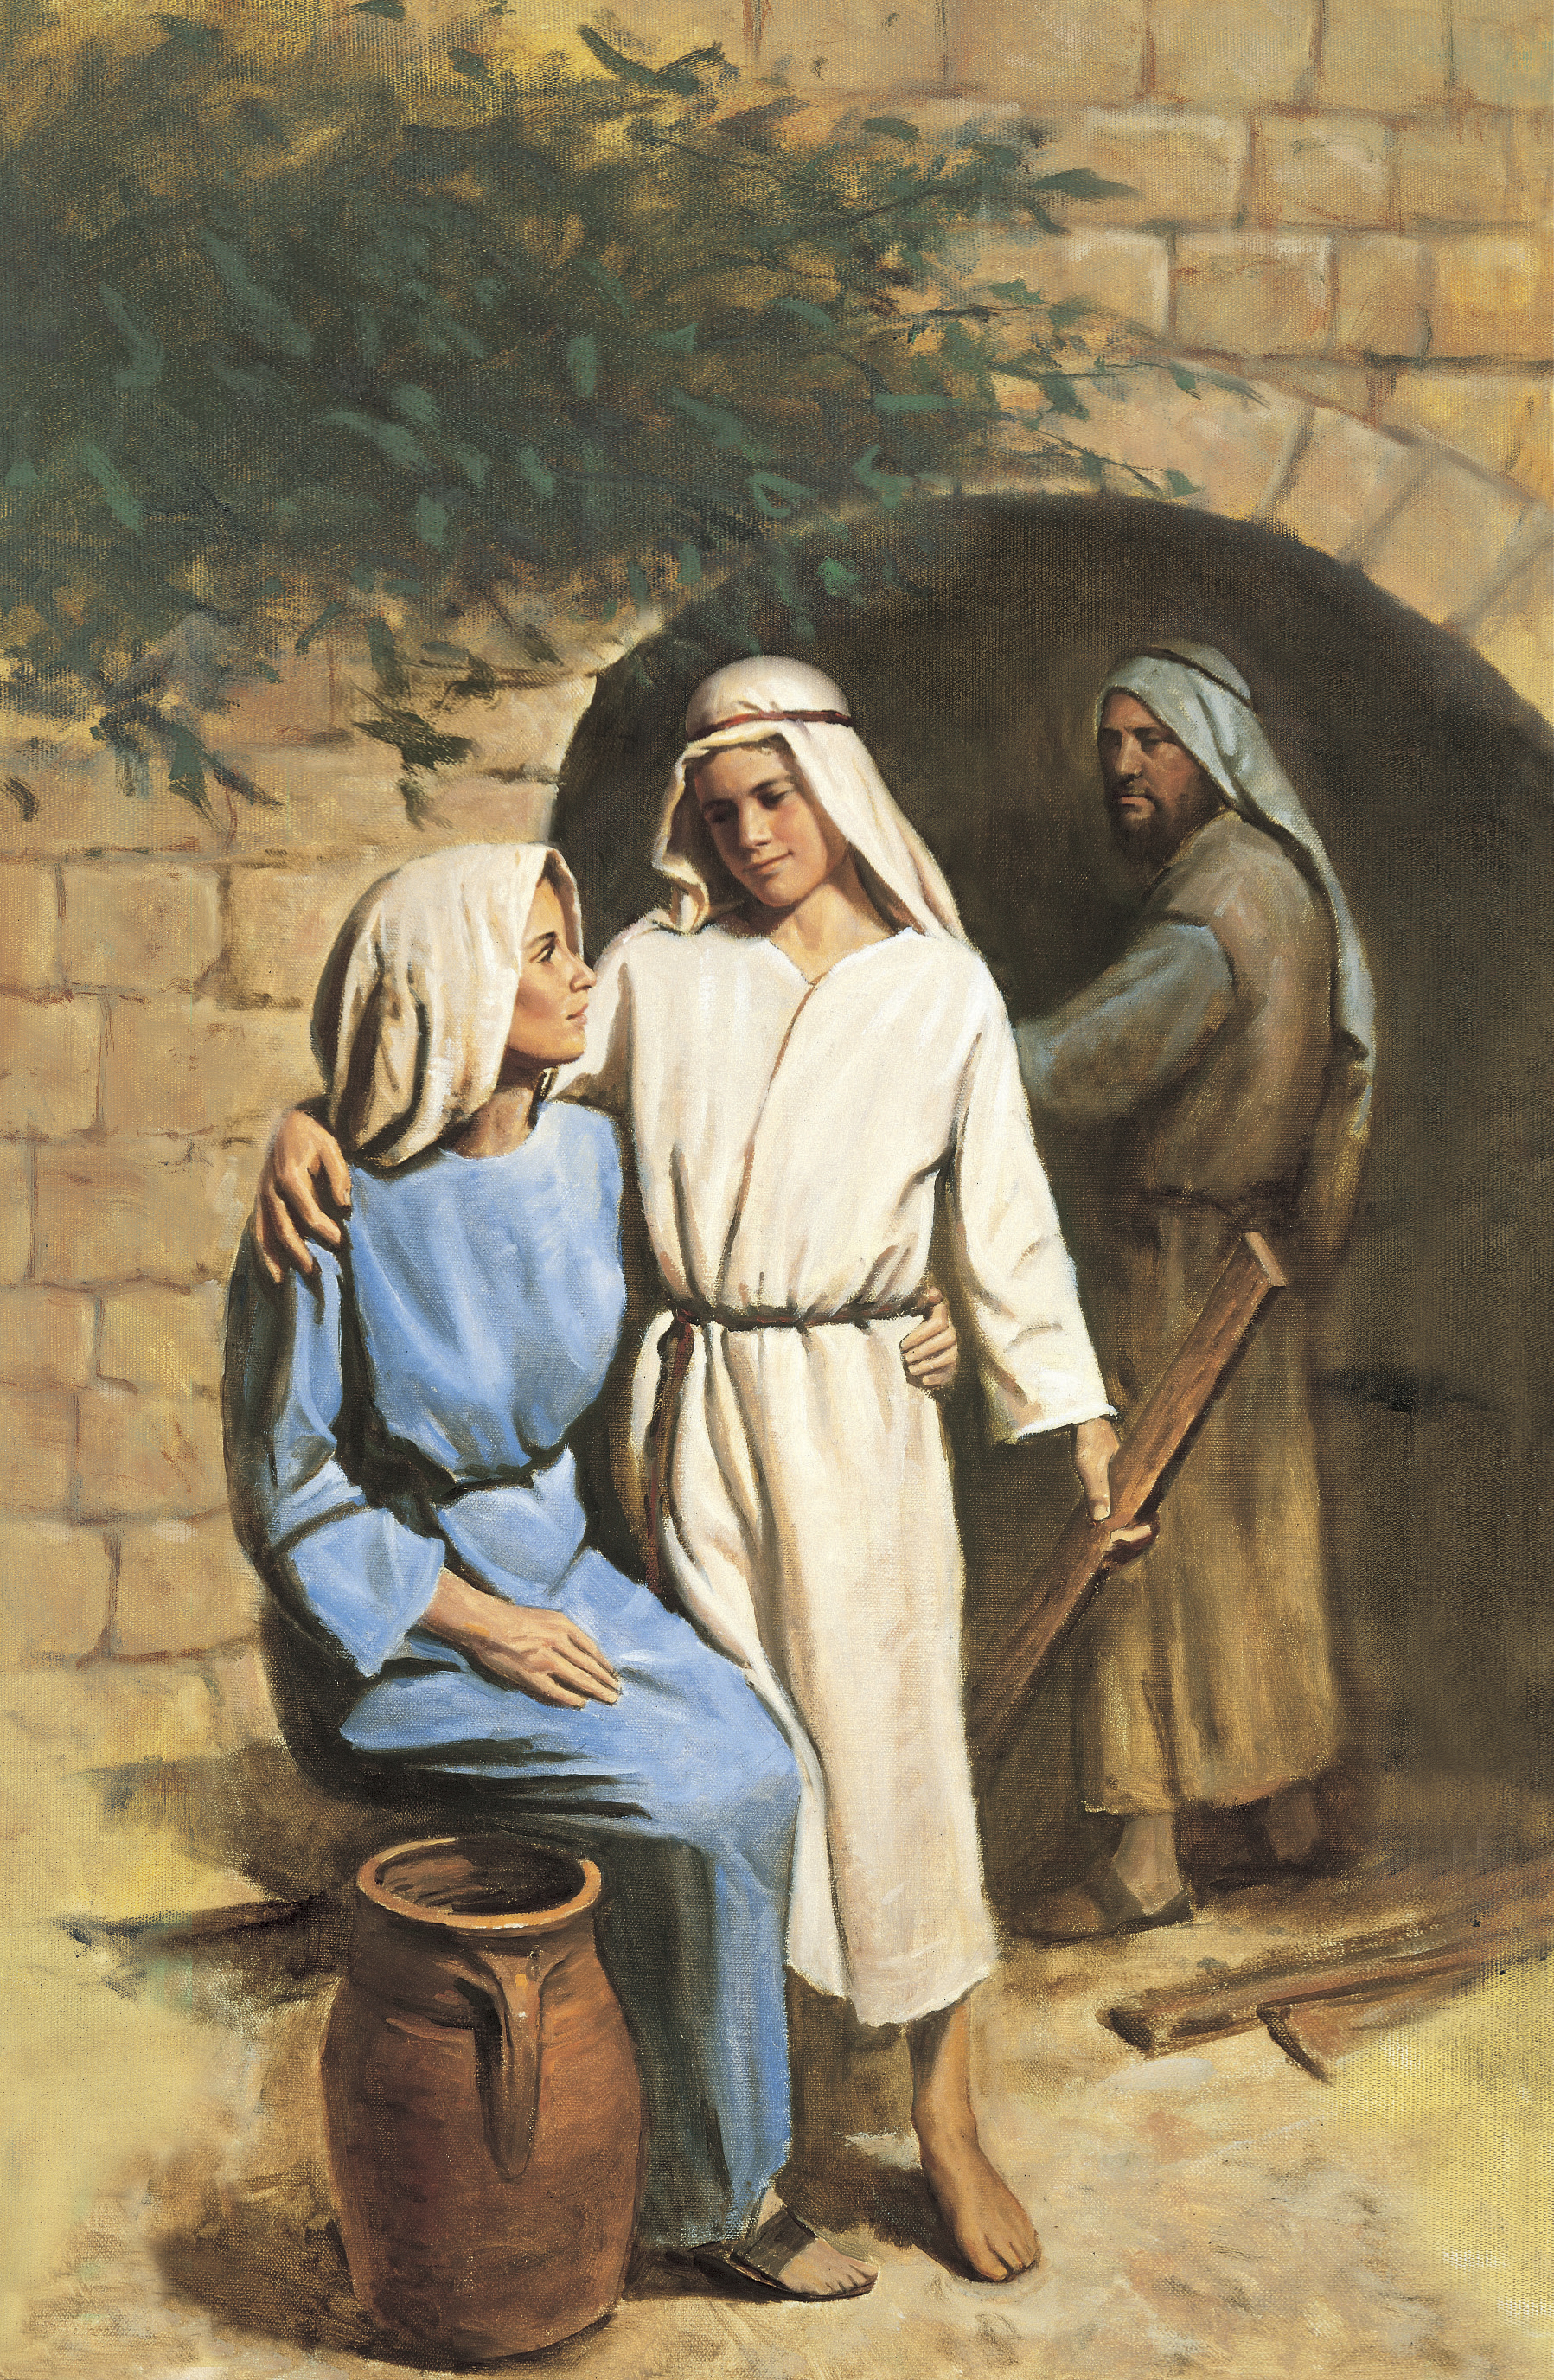 Jesus and His Mother, by Del Parson: GAK 242; Isaiah 7:14; Matthew 2:13; Joseph Smith Translation, John 2:4 (in John 2:4, footnote a); John 19:26–27; 1 Nephi 11:18–20; Mosiah 3:8; Alma 7:10